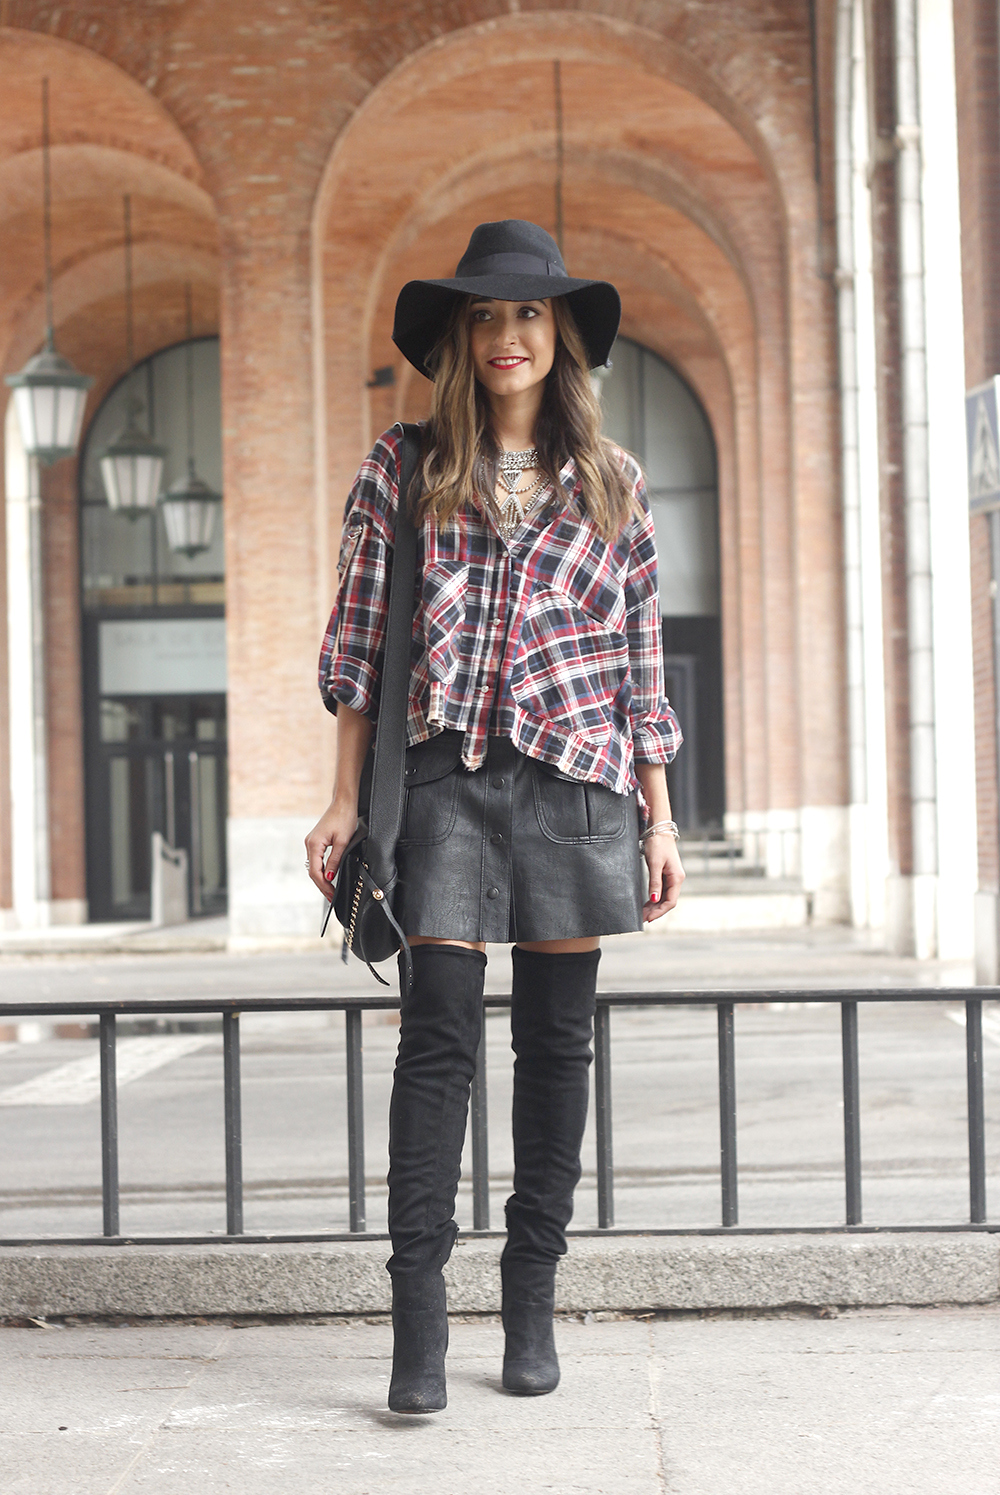 tartan shirt leather skirt over the knee boots accessories hat fashion outfit rainny day10